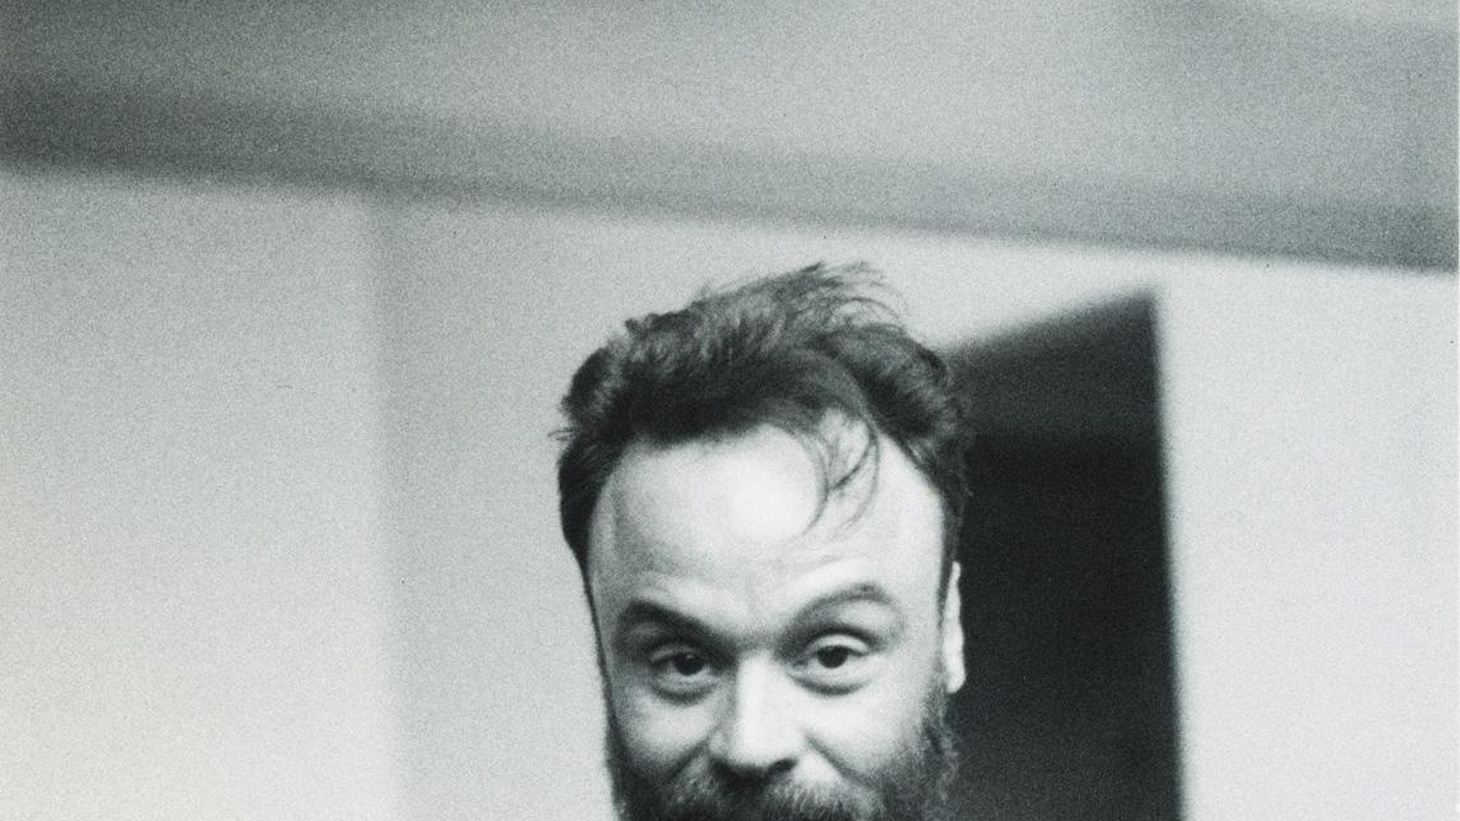 Brazilian singer, songwriter and multi-instrumentalist Rodrigo Amarante is known for his work with Los Hermanos and Little Joy. His debut full length has a dynamic sound.